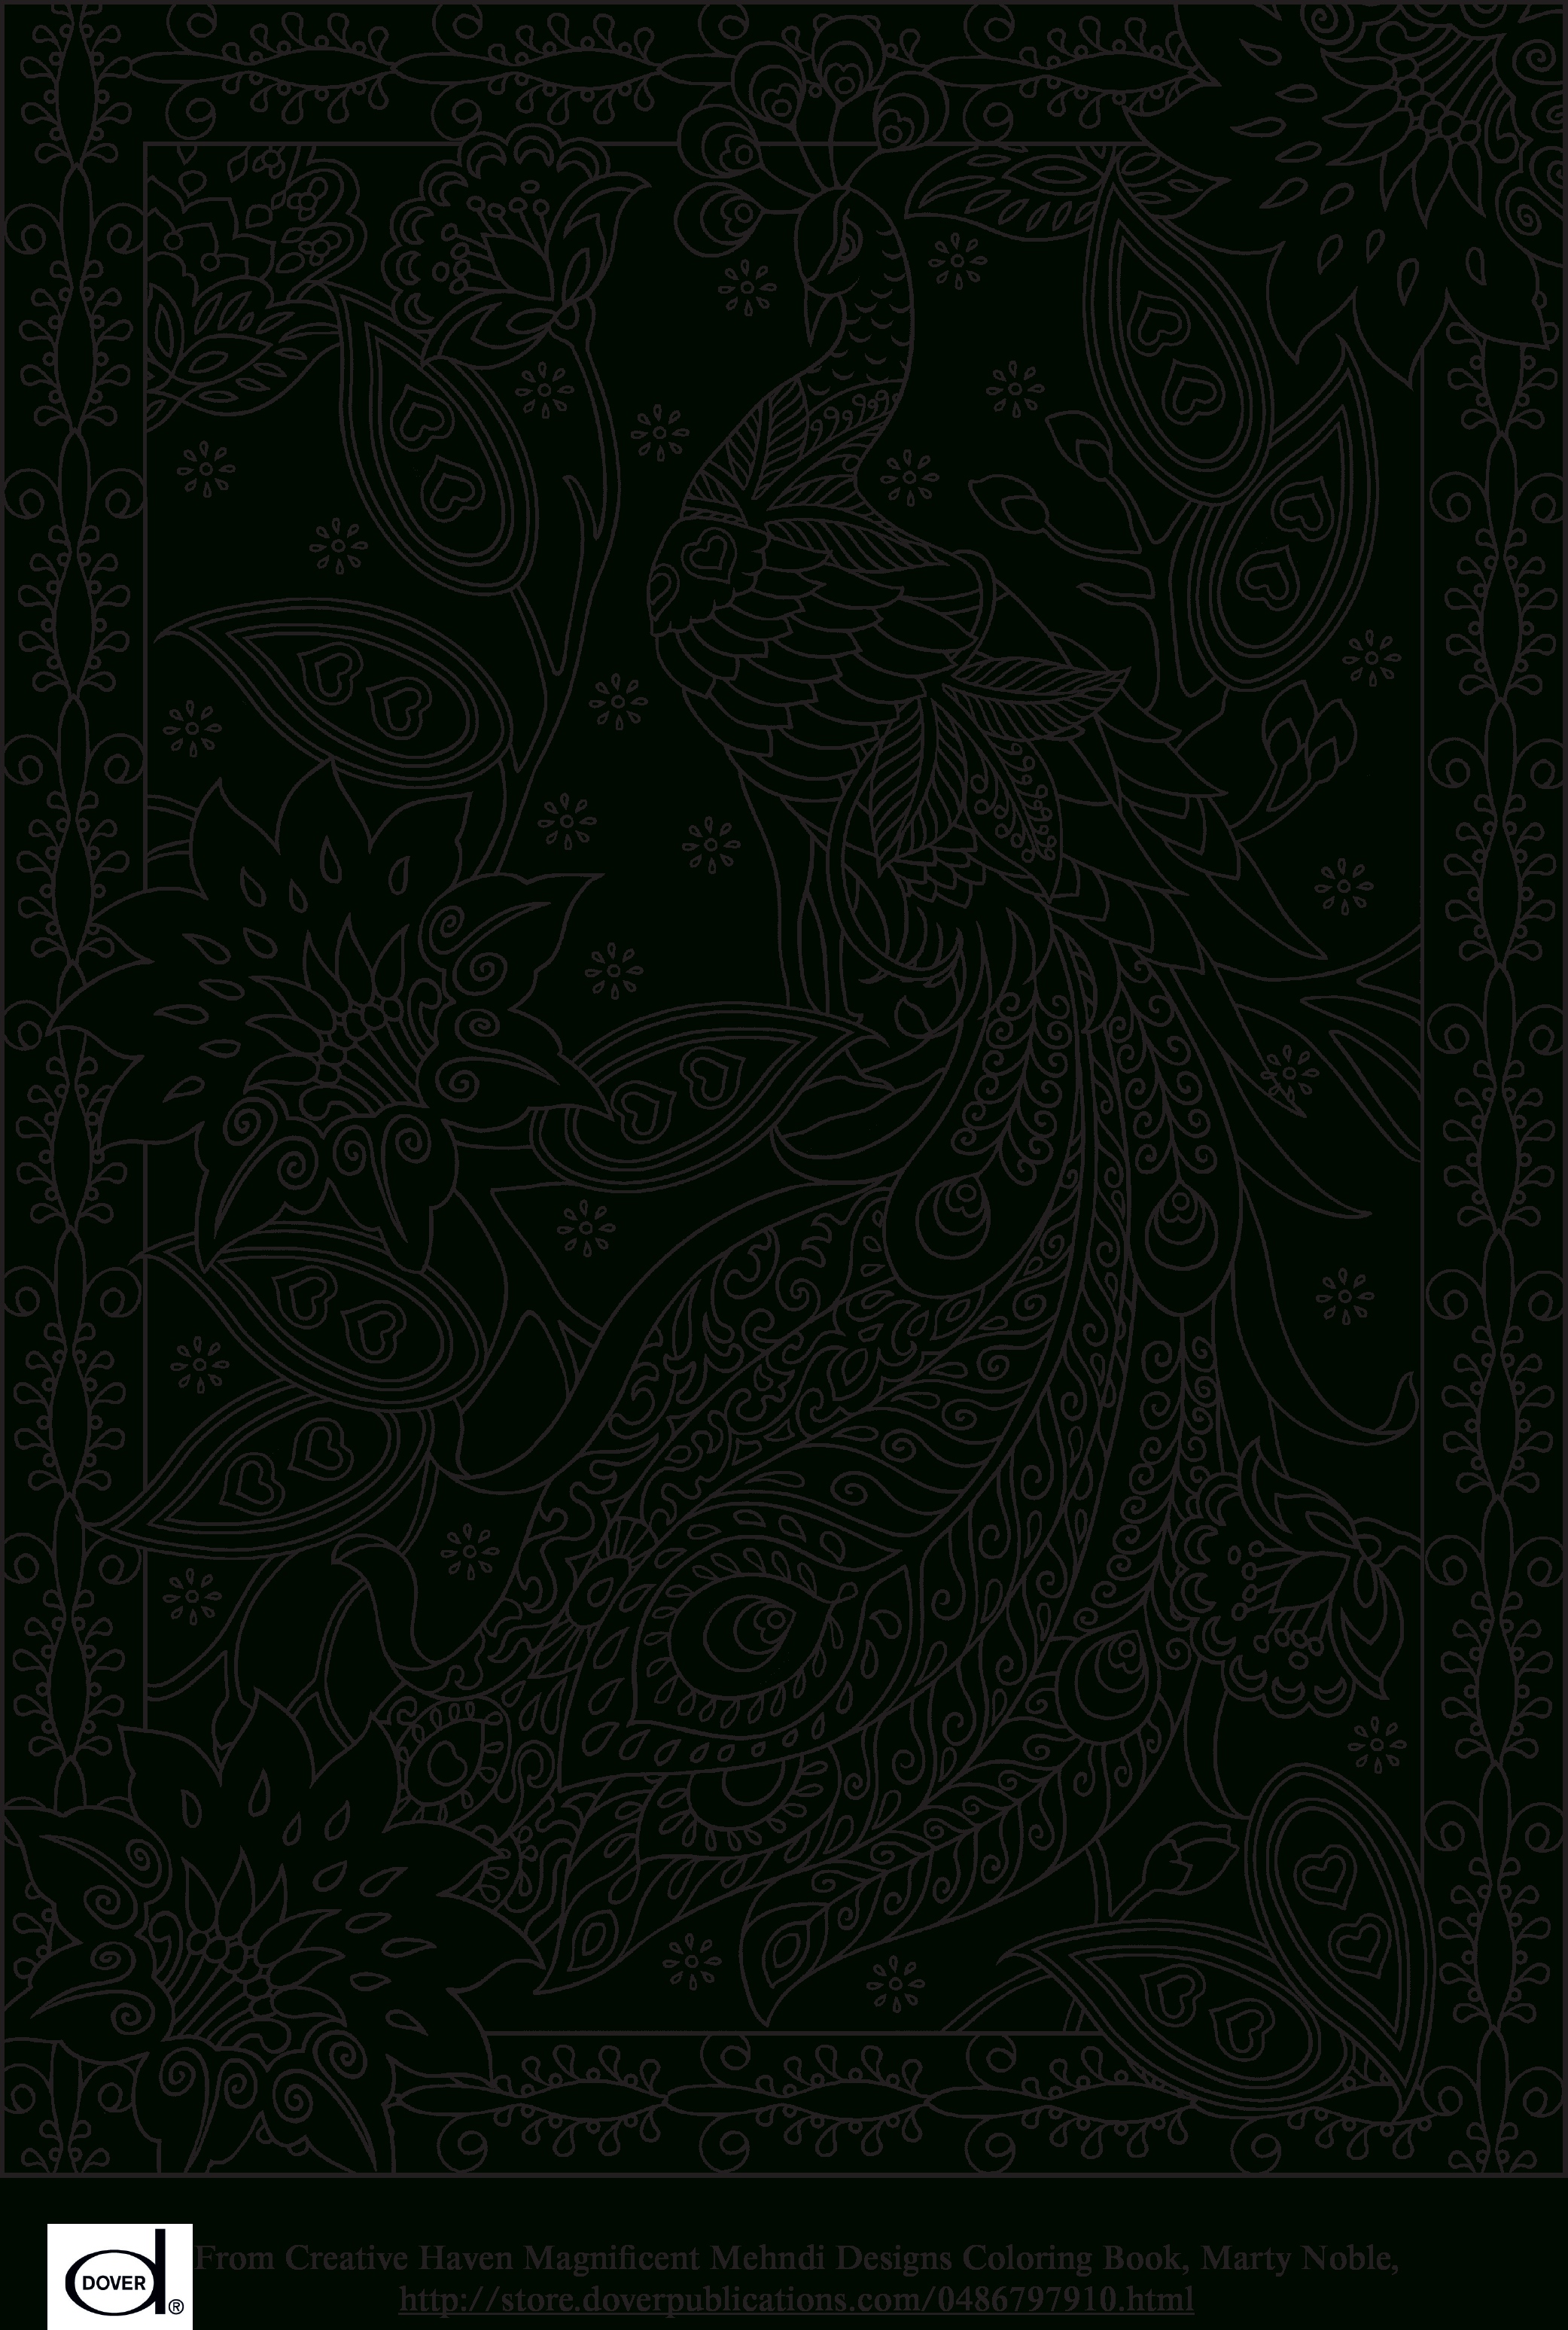 Peacock Feather Coloring Pages Colouring Adult Detailed Advanced - Free Printable Coloring Pages For Adults Advanced